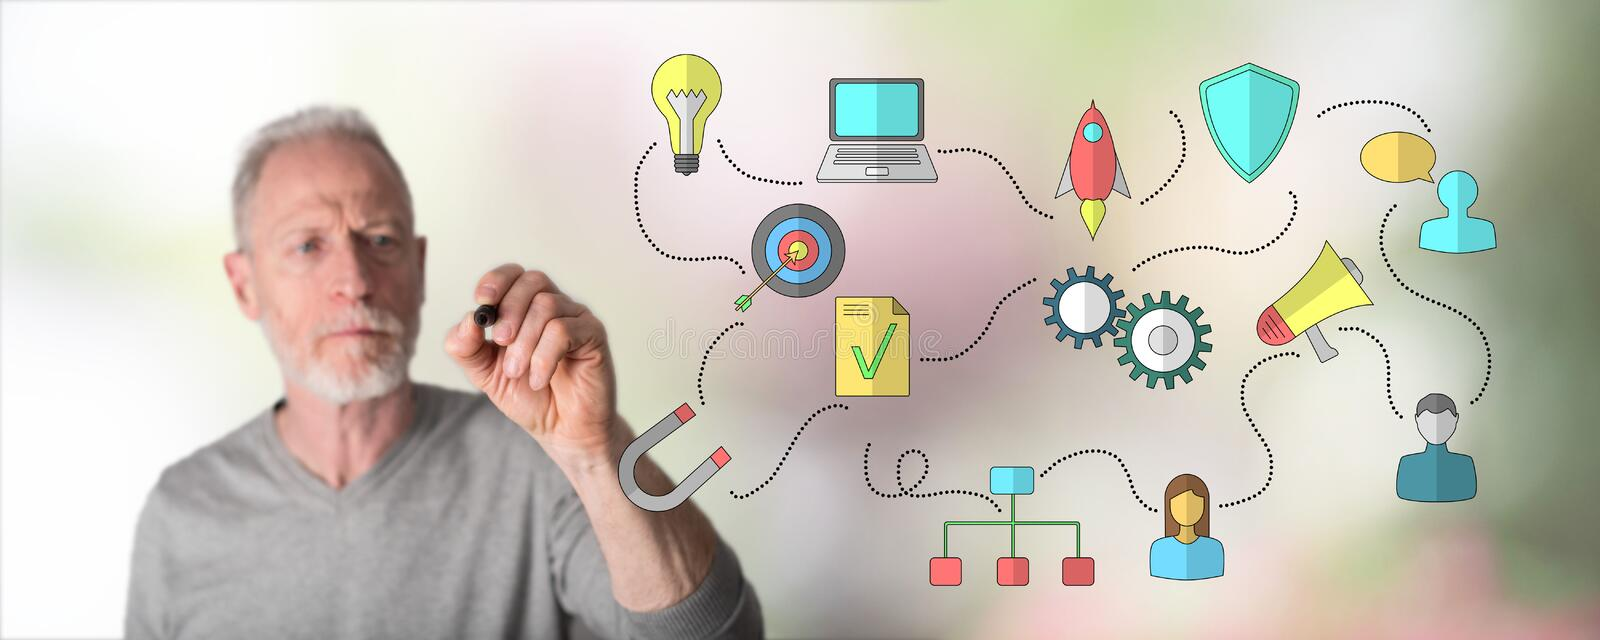 Man drawing business strategy concept. Business strategy concept drawn by a man stock image